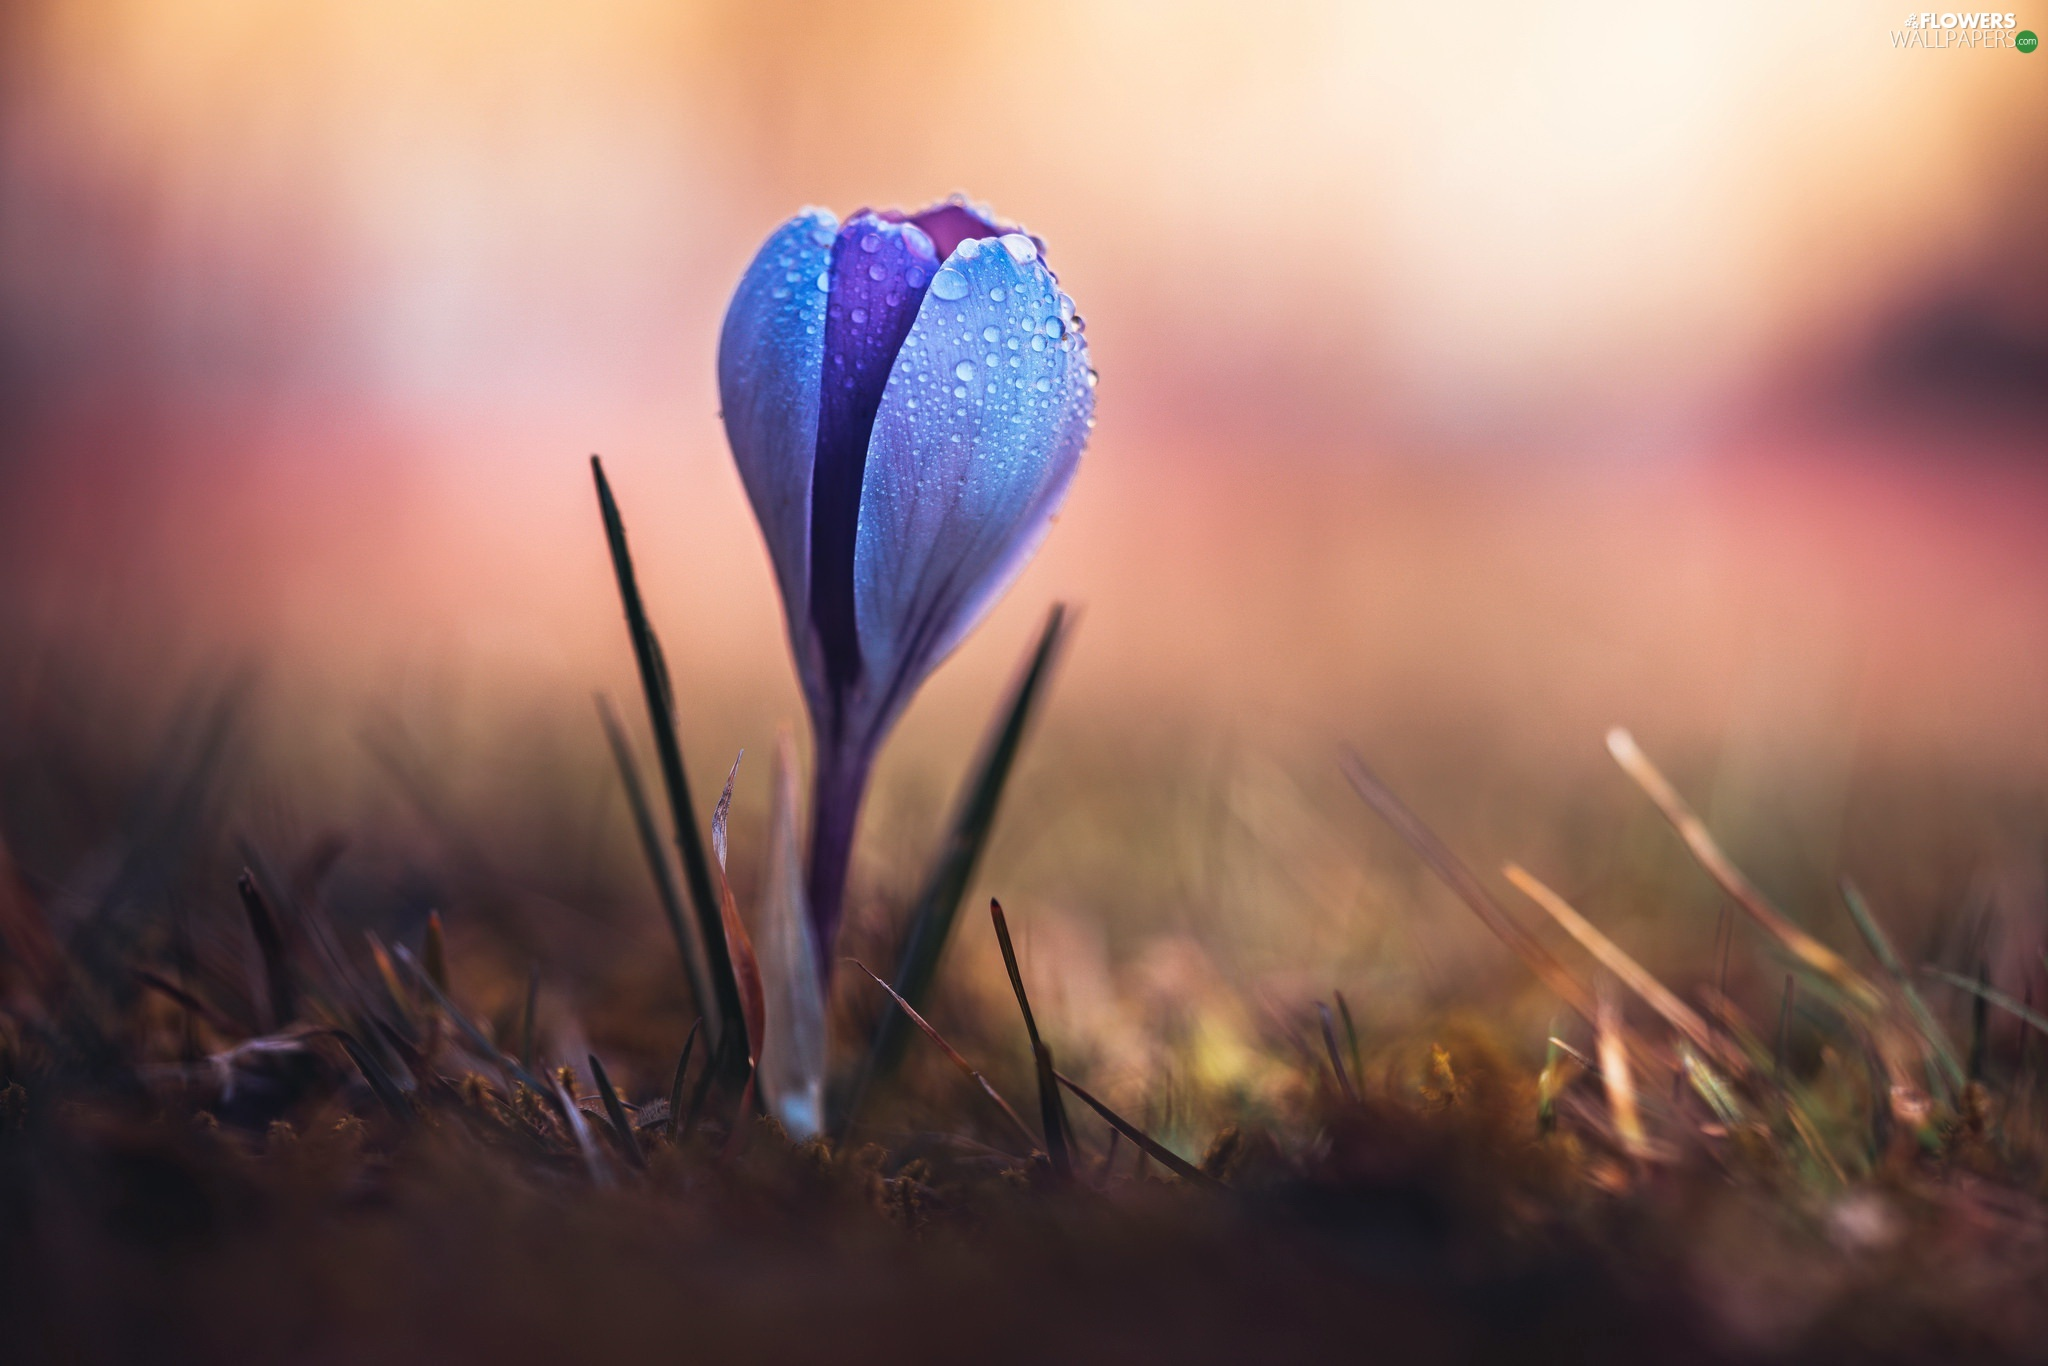 blurry background, crocus, drops